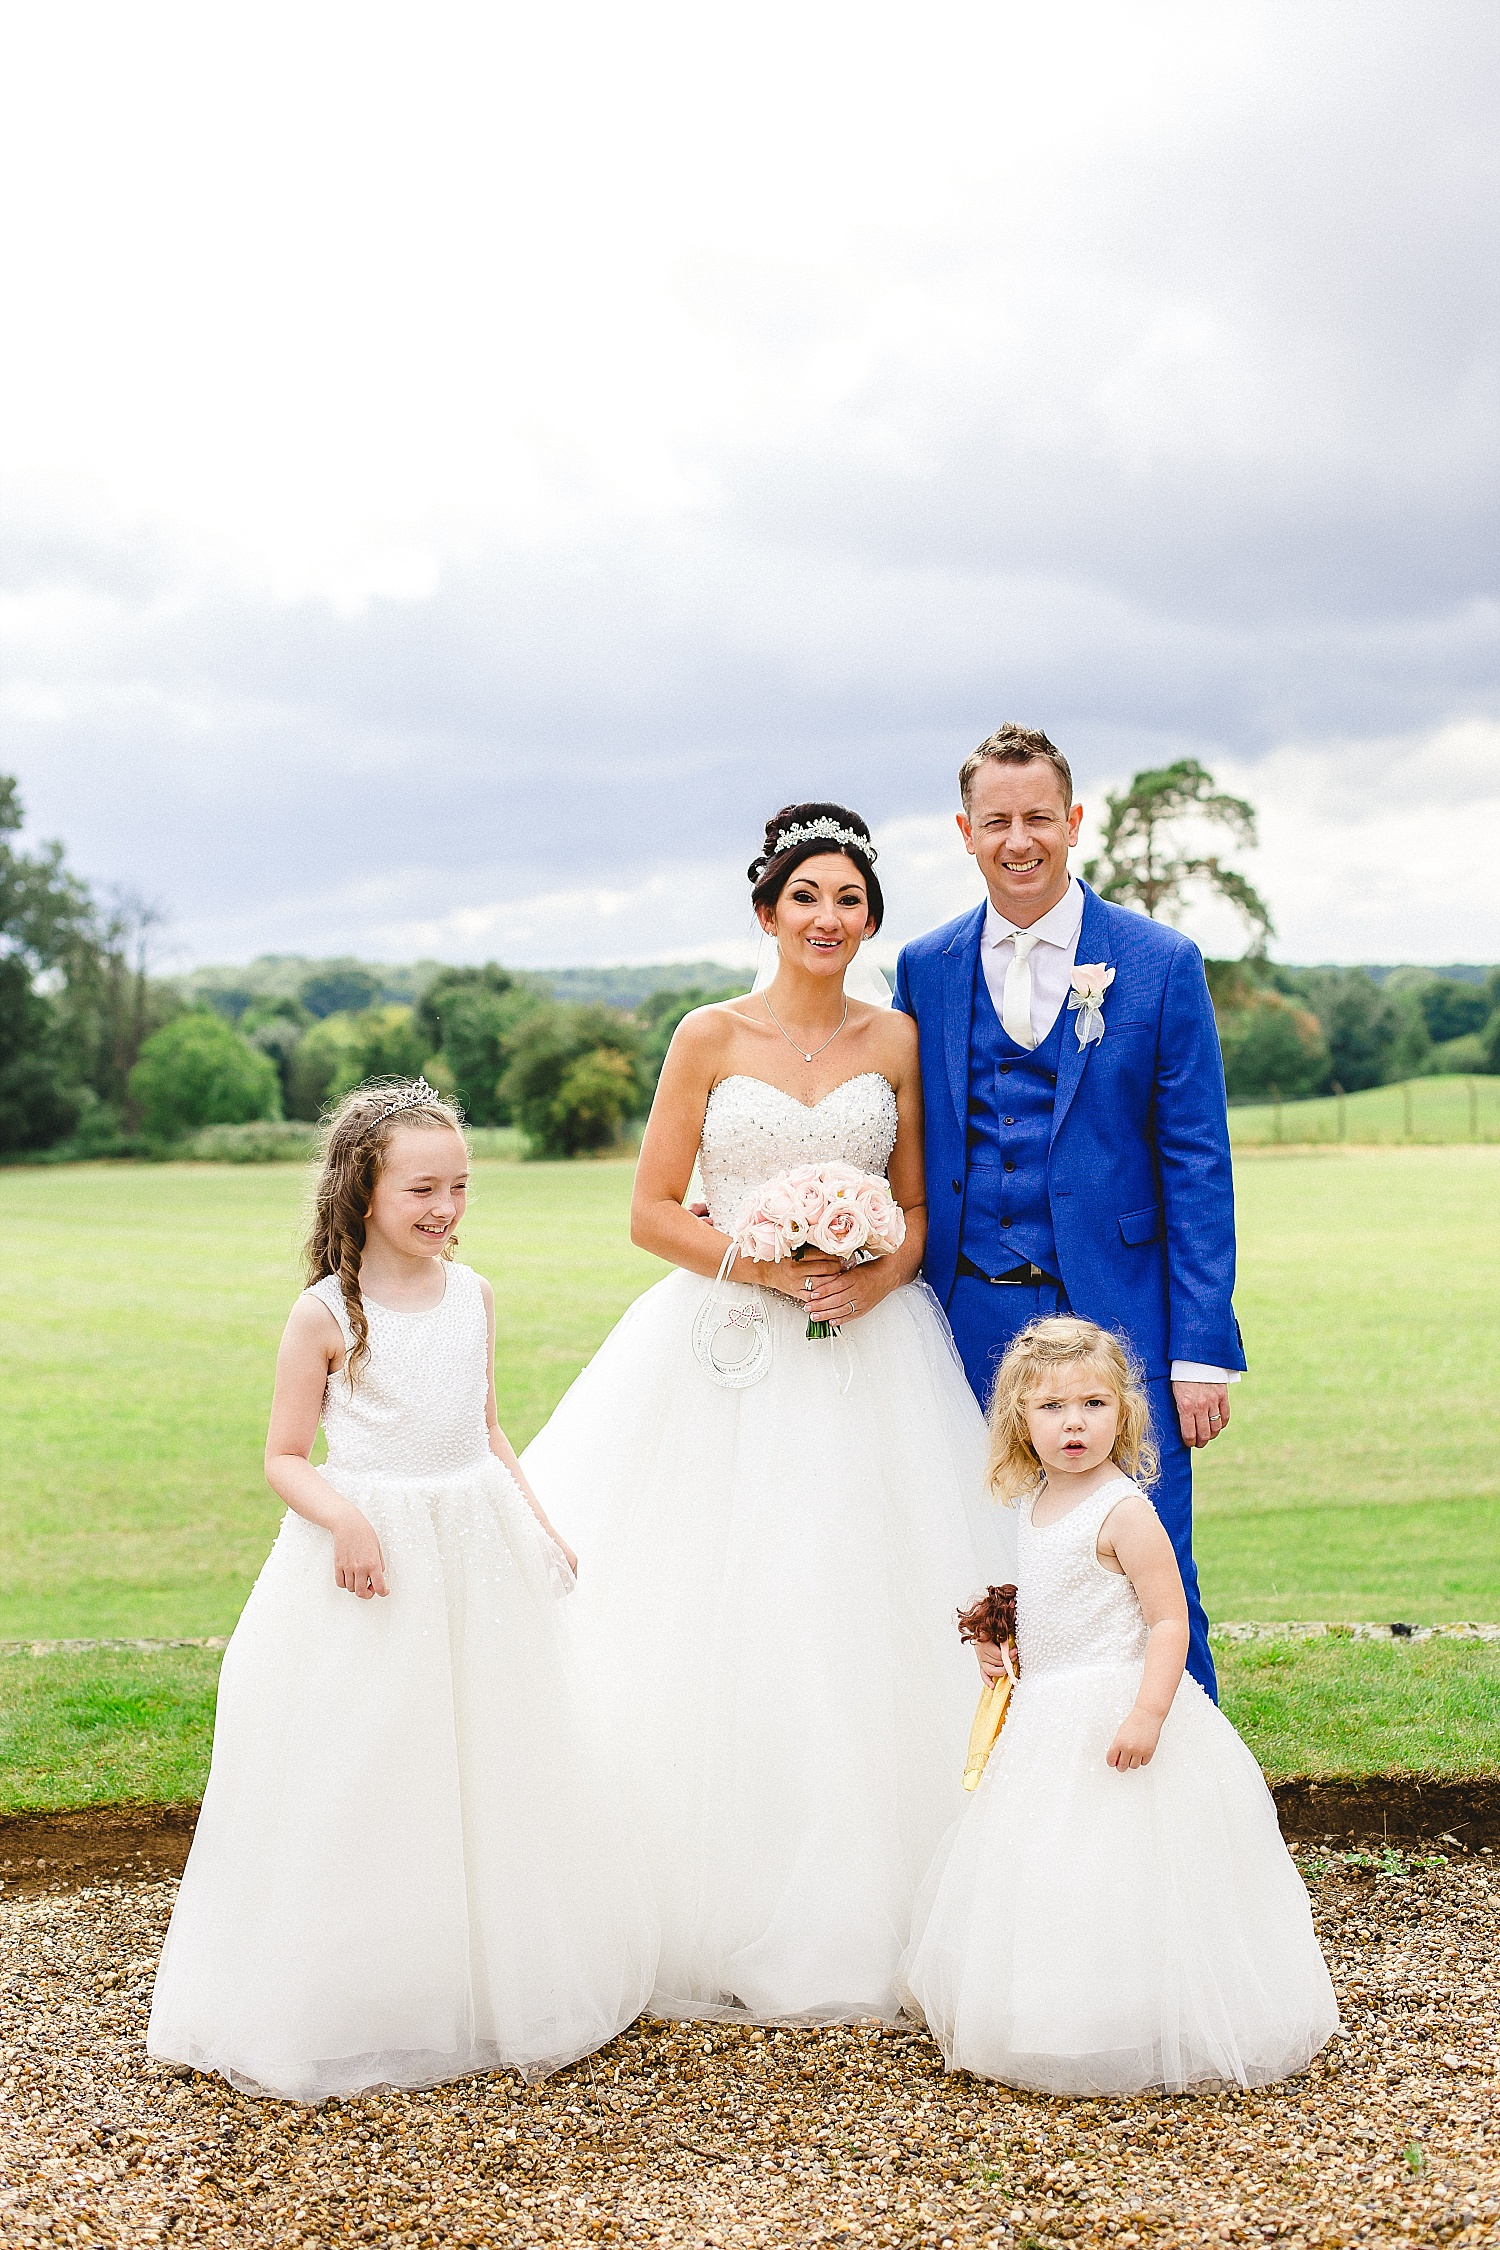 Wedding Photographer Essex - Gosfield Hall Wedding - Family Portrait